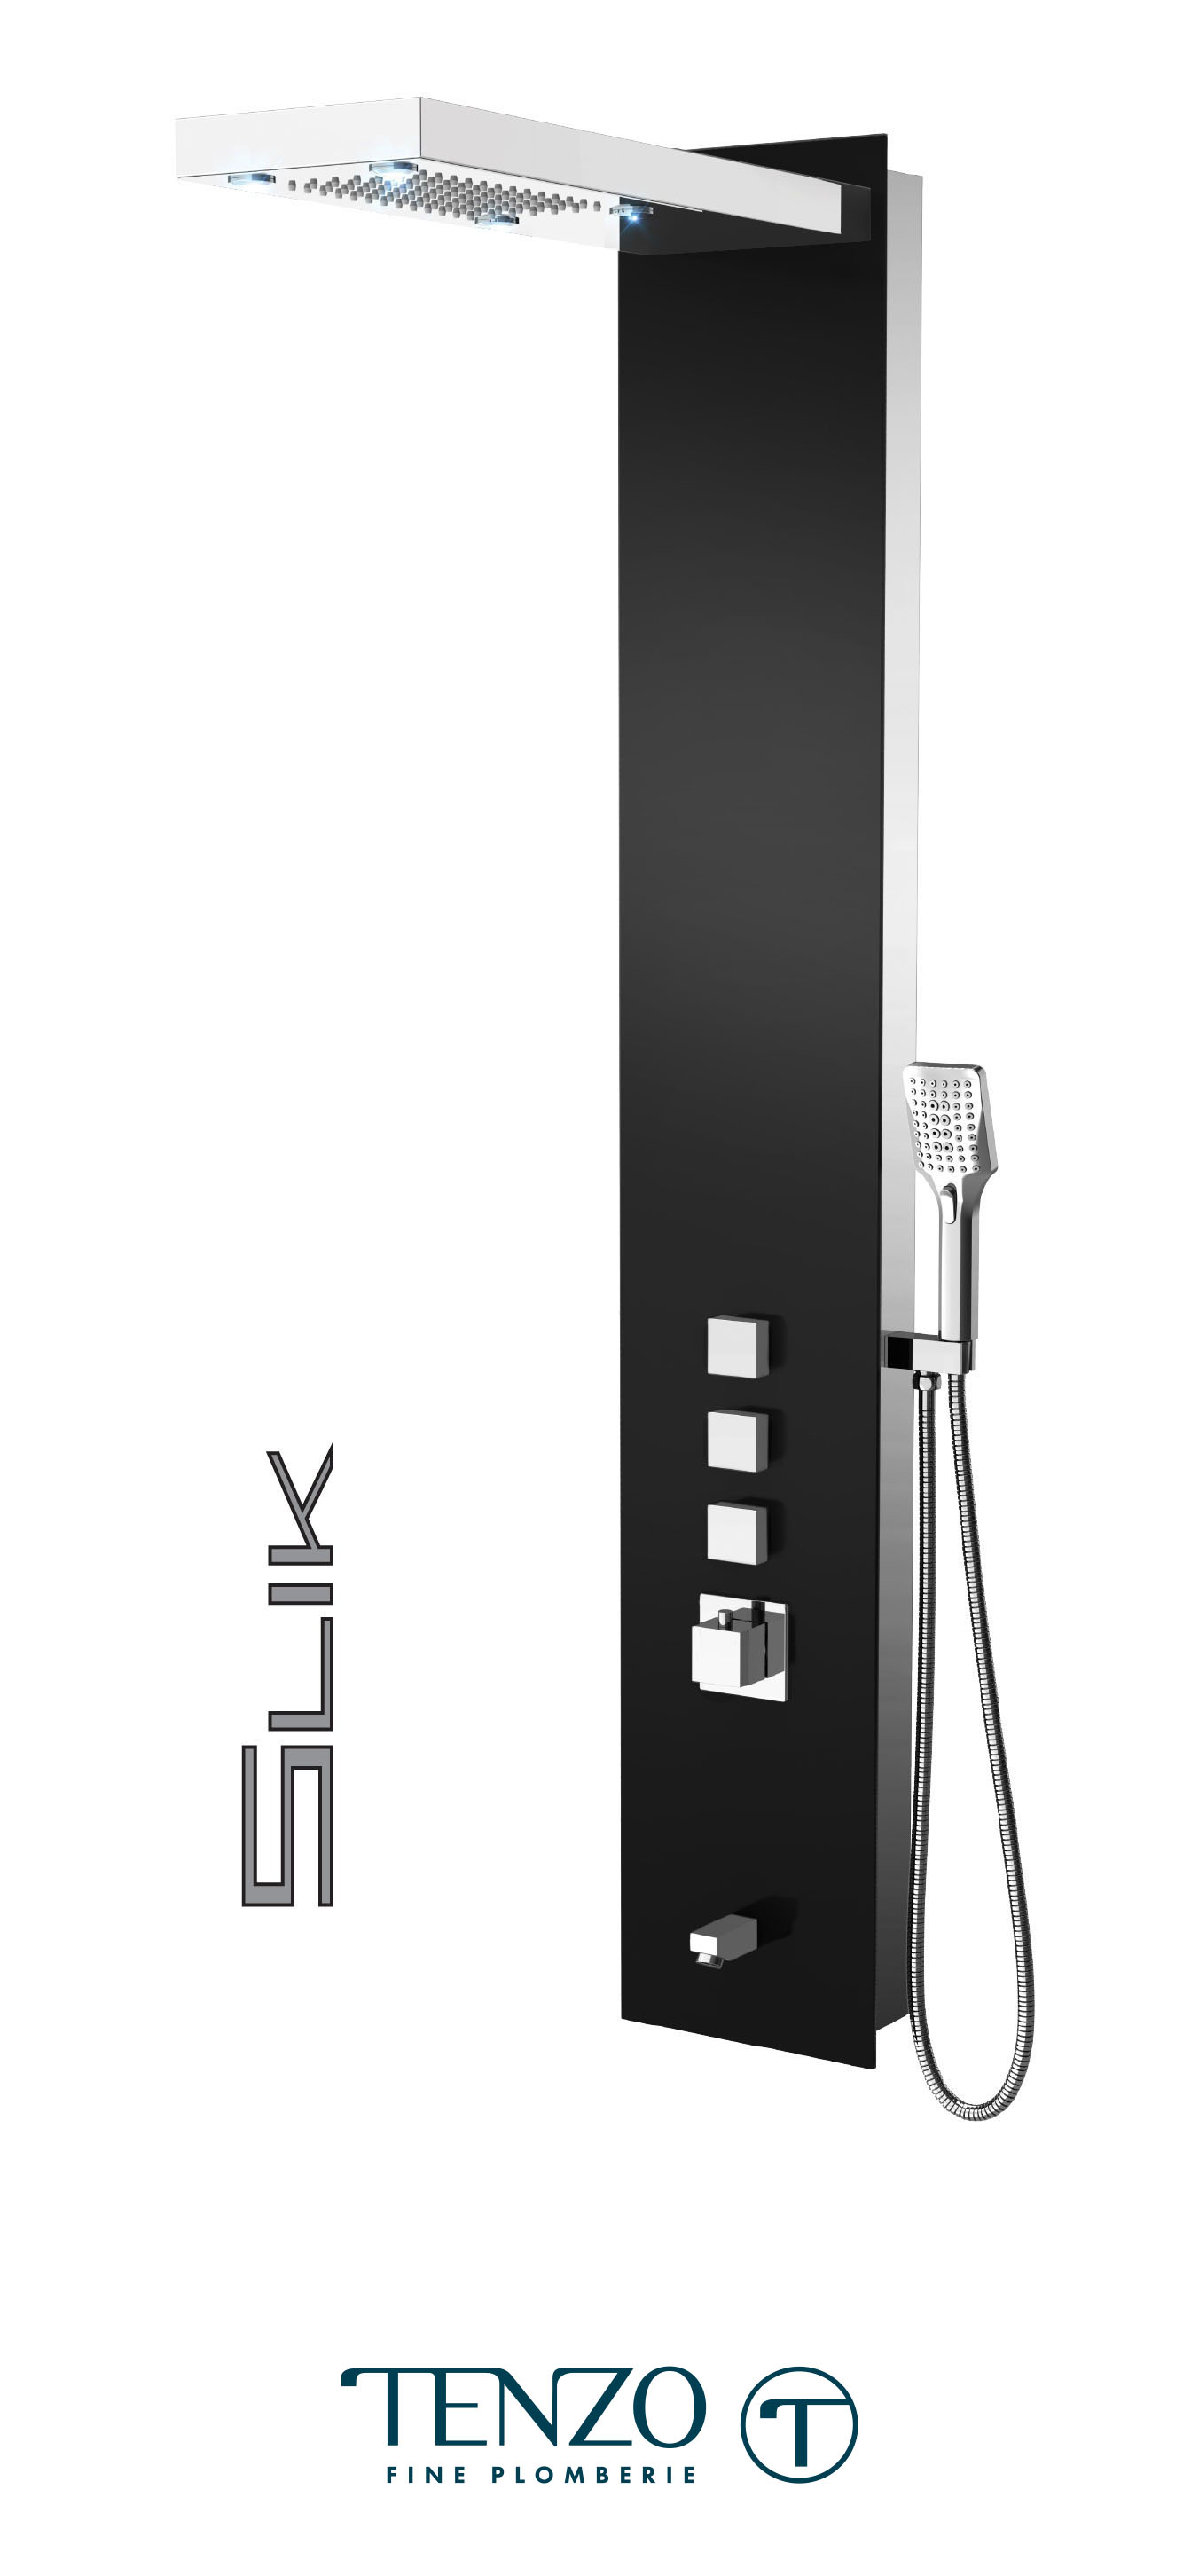 TZG11-XX-SL-3L - Shower columns - Tempered Glass, 3 functions